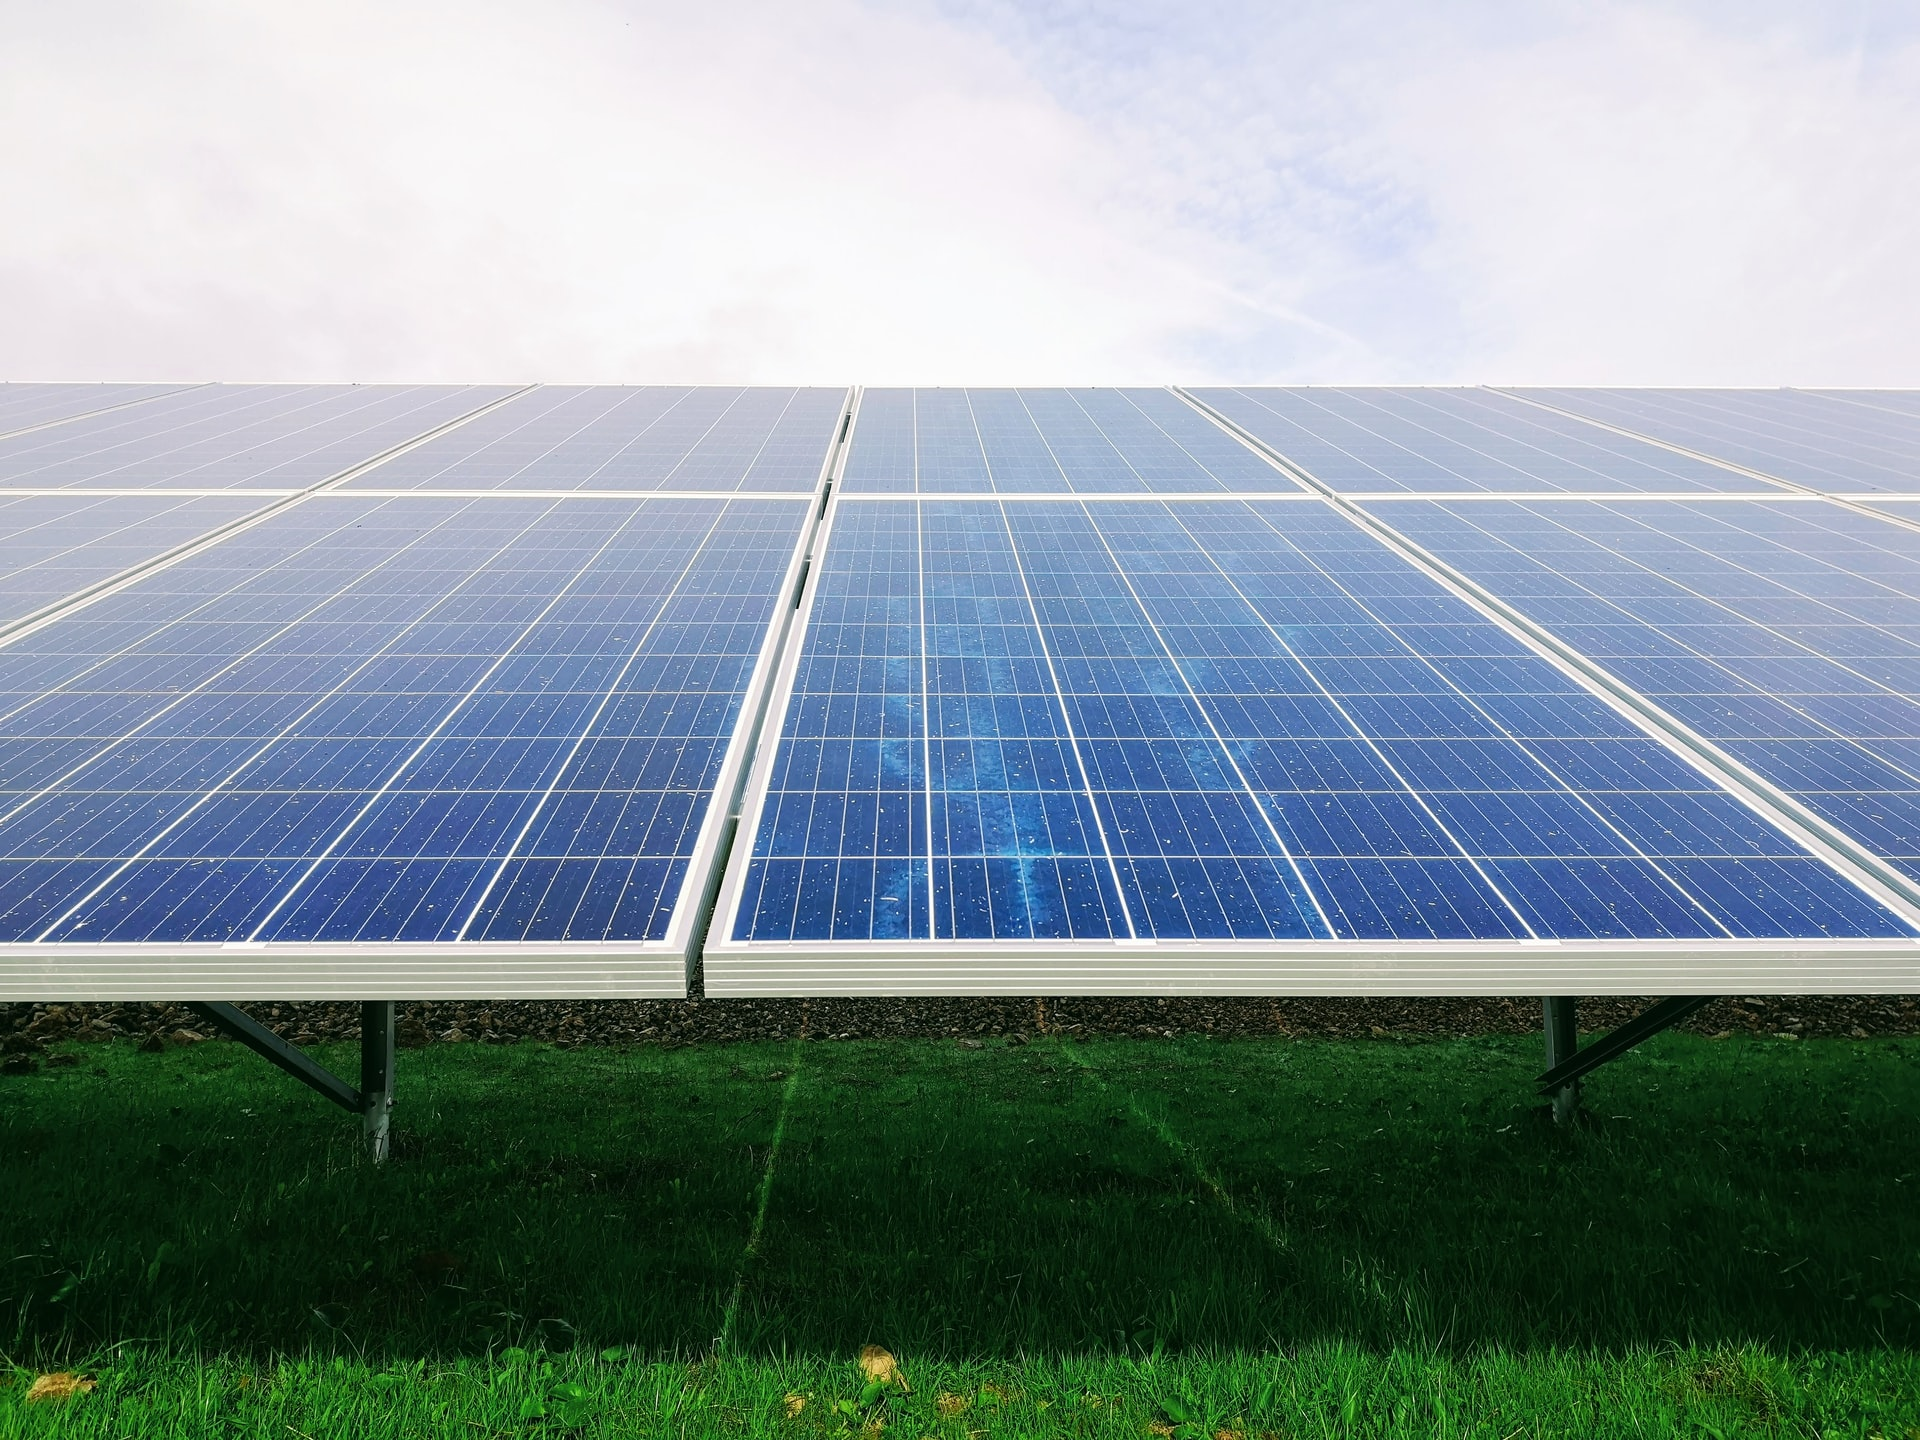 Solar Installations Steady but Polysilicon Costs Climb, Extending Delays